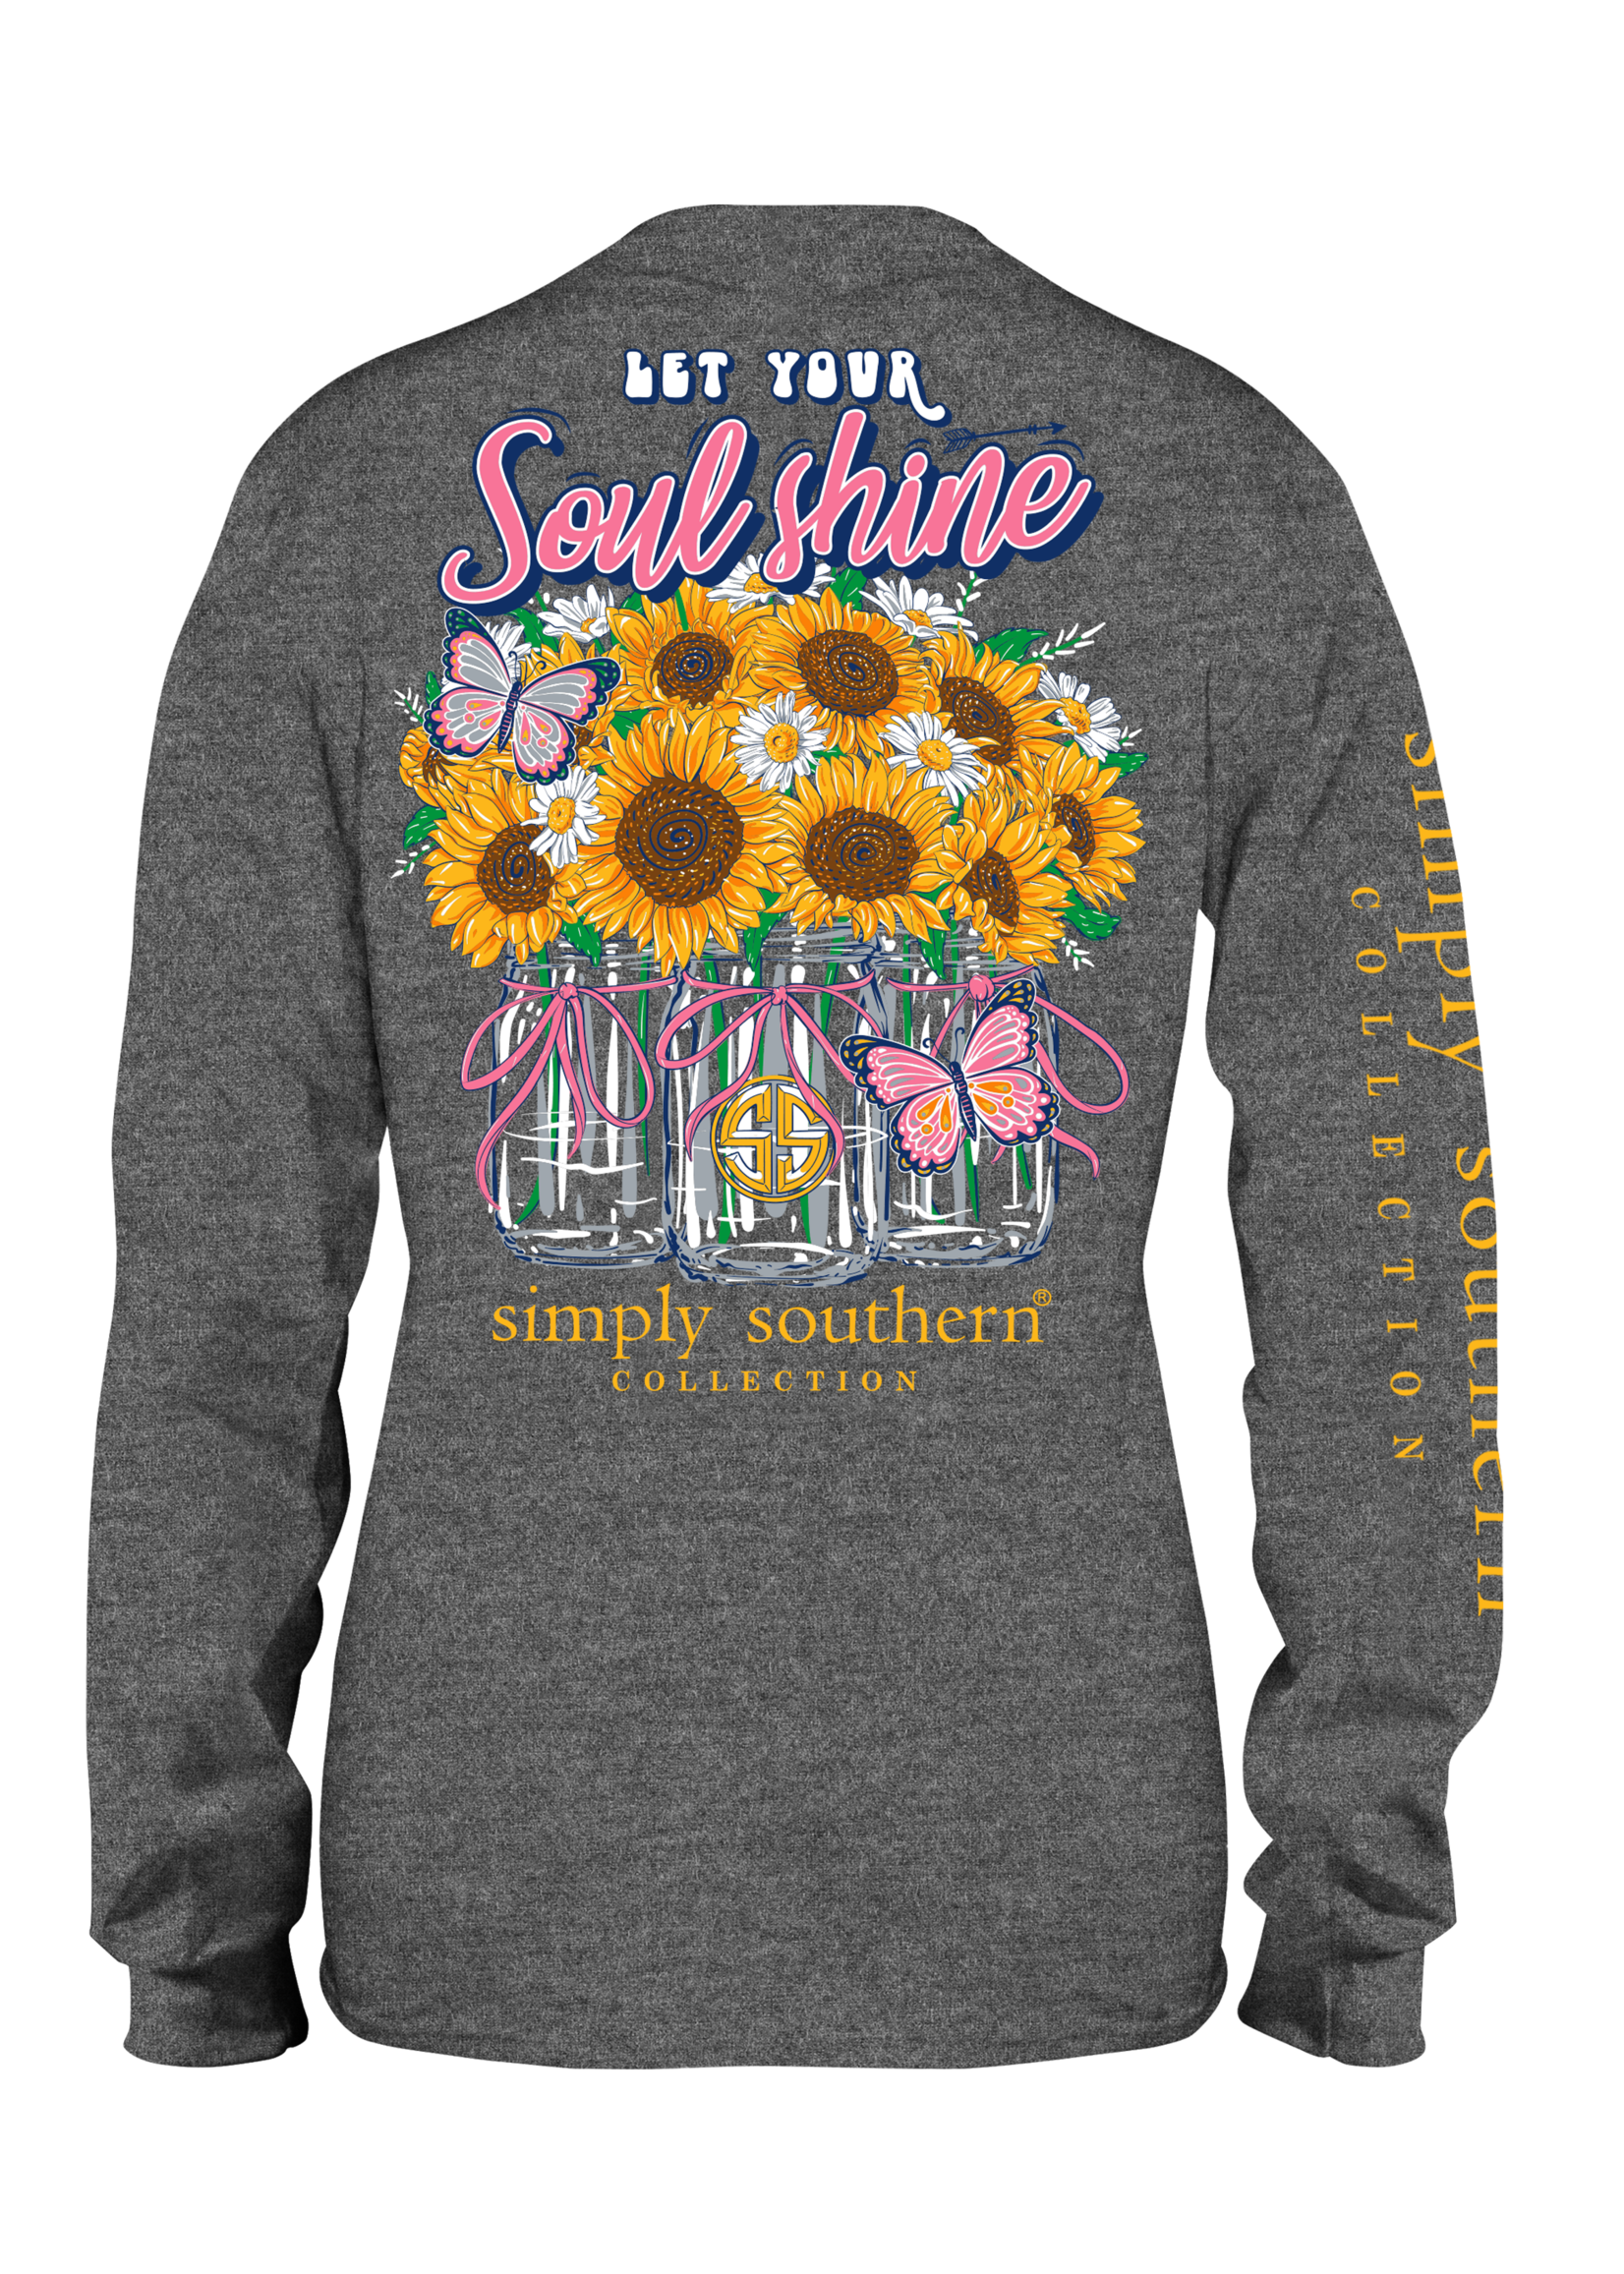 Simply Southern Collection Let Your Soul Shine Long Sleeve T-Shirt - Dark Heather Gray